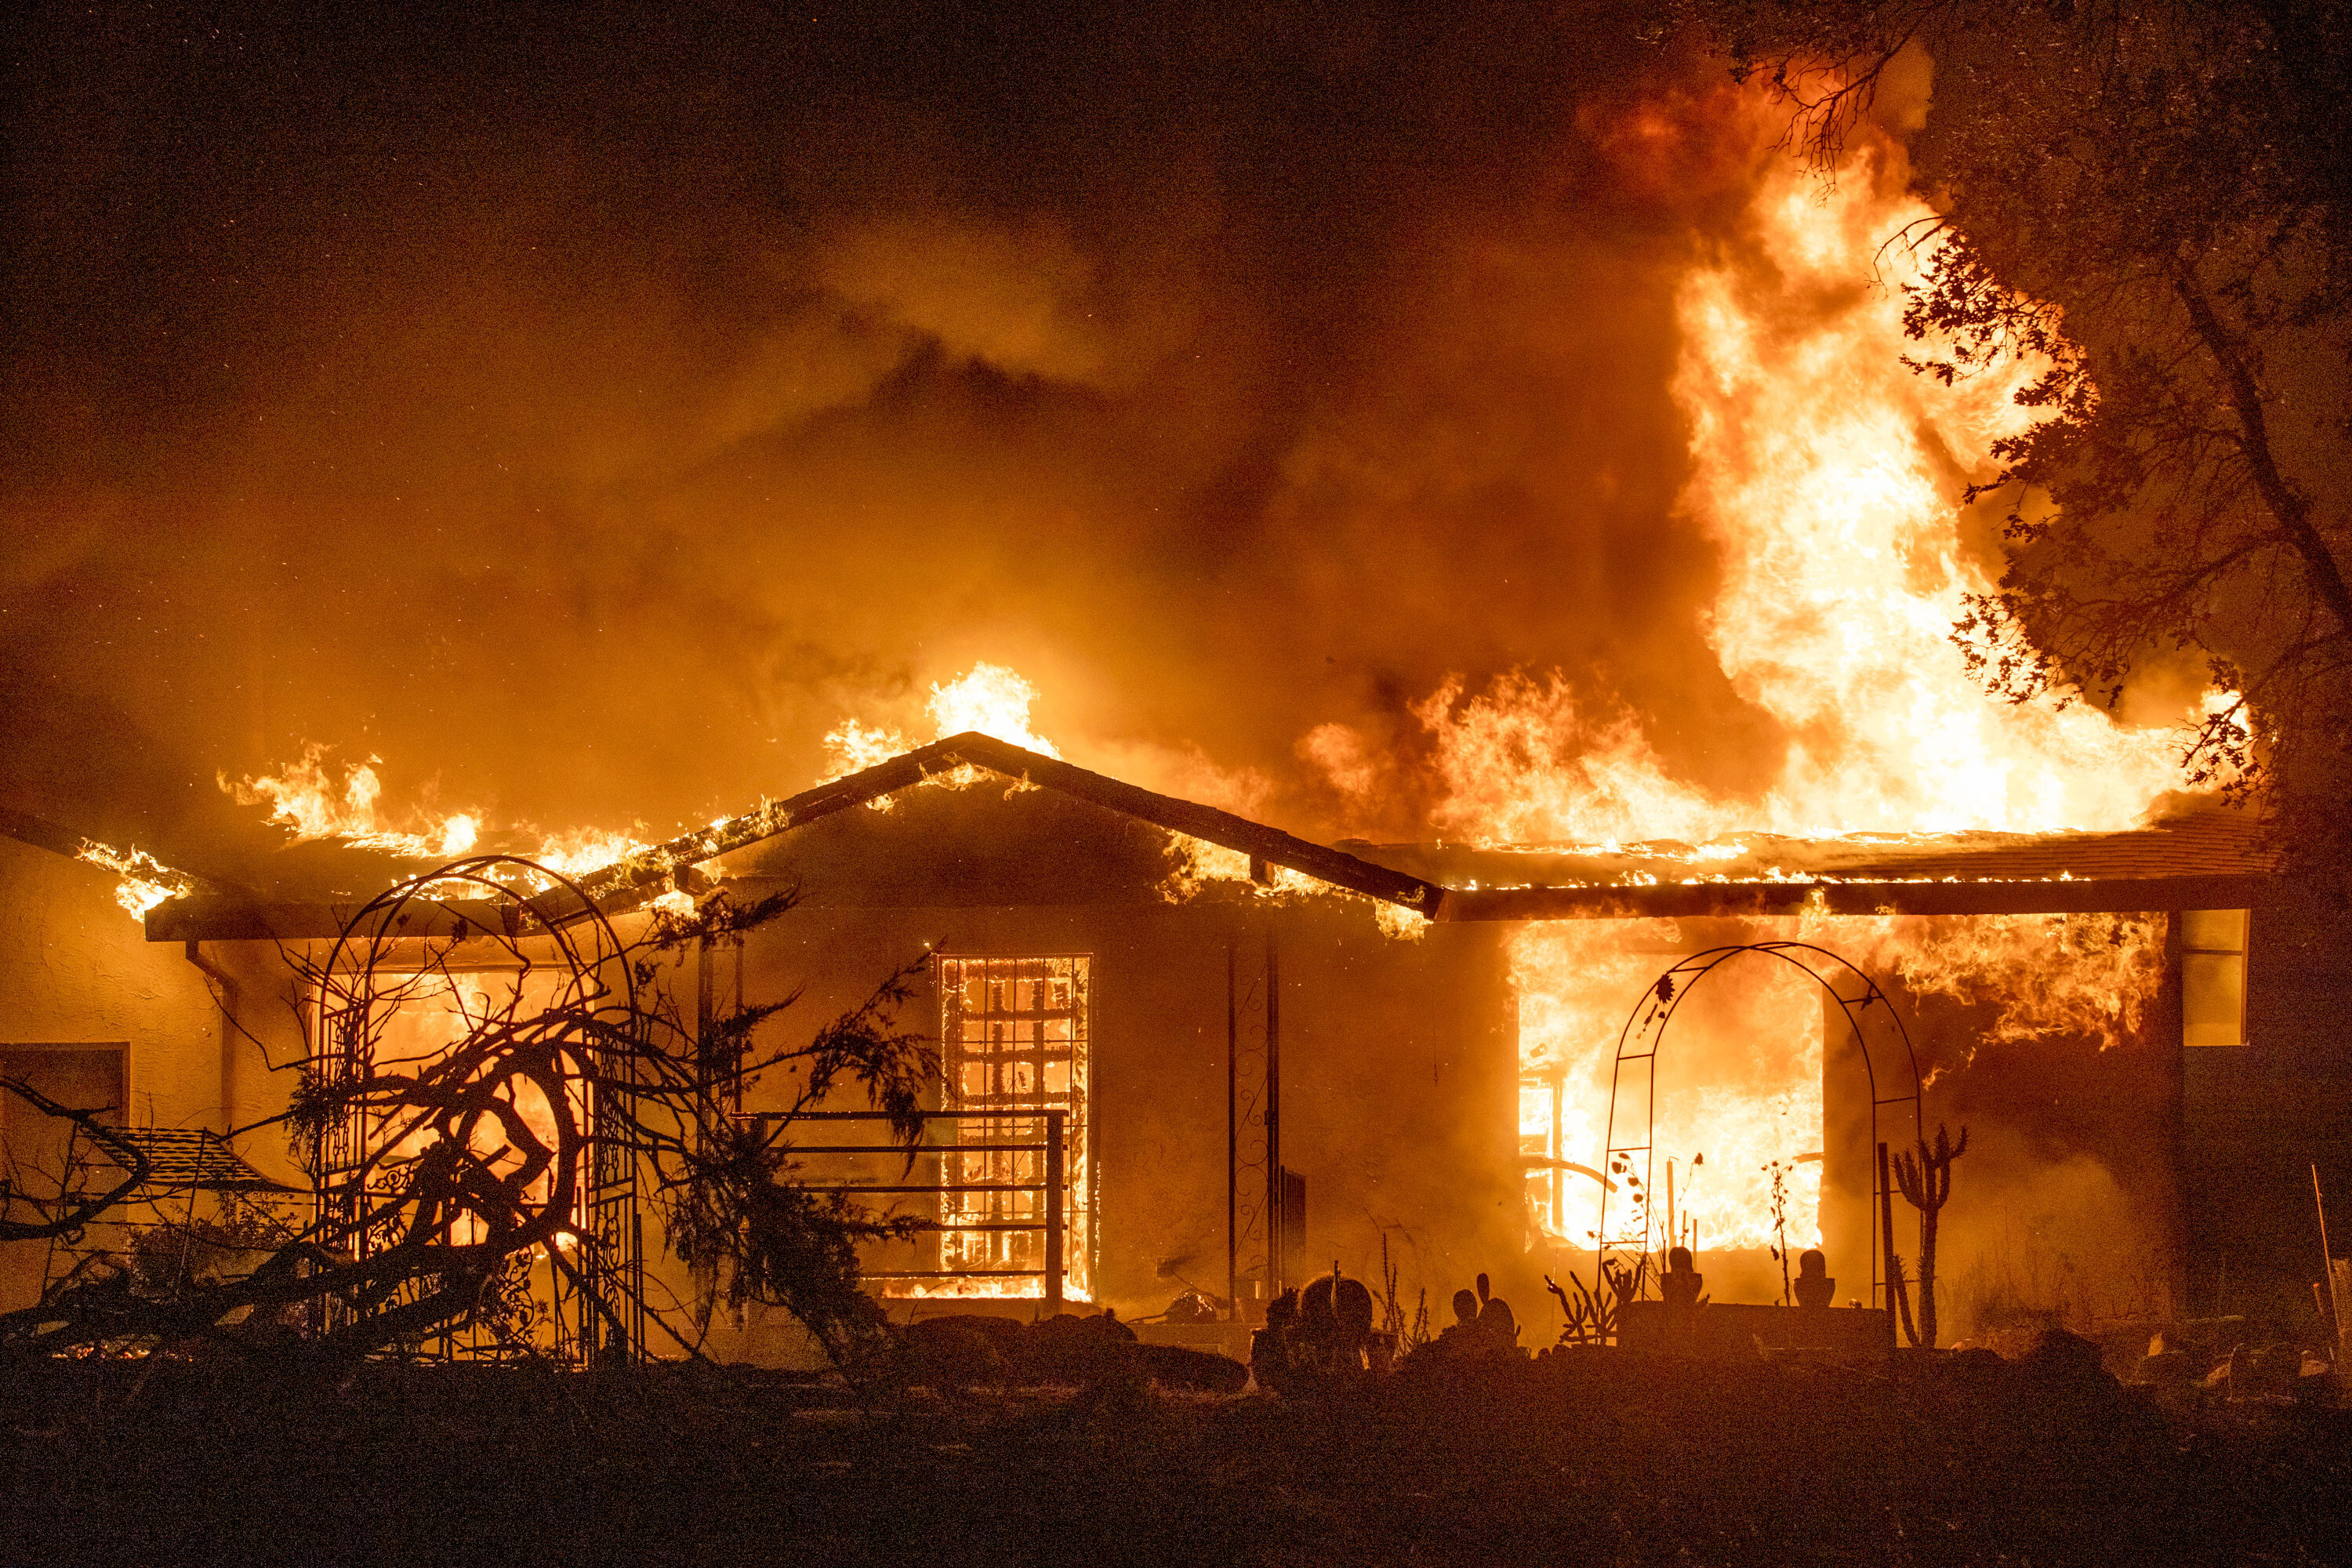 California utility PG&E is 'criminally liable' for the fatal 2020 Zogg Fire, prosecutor says